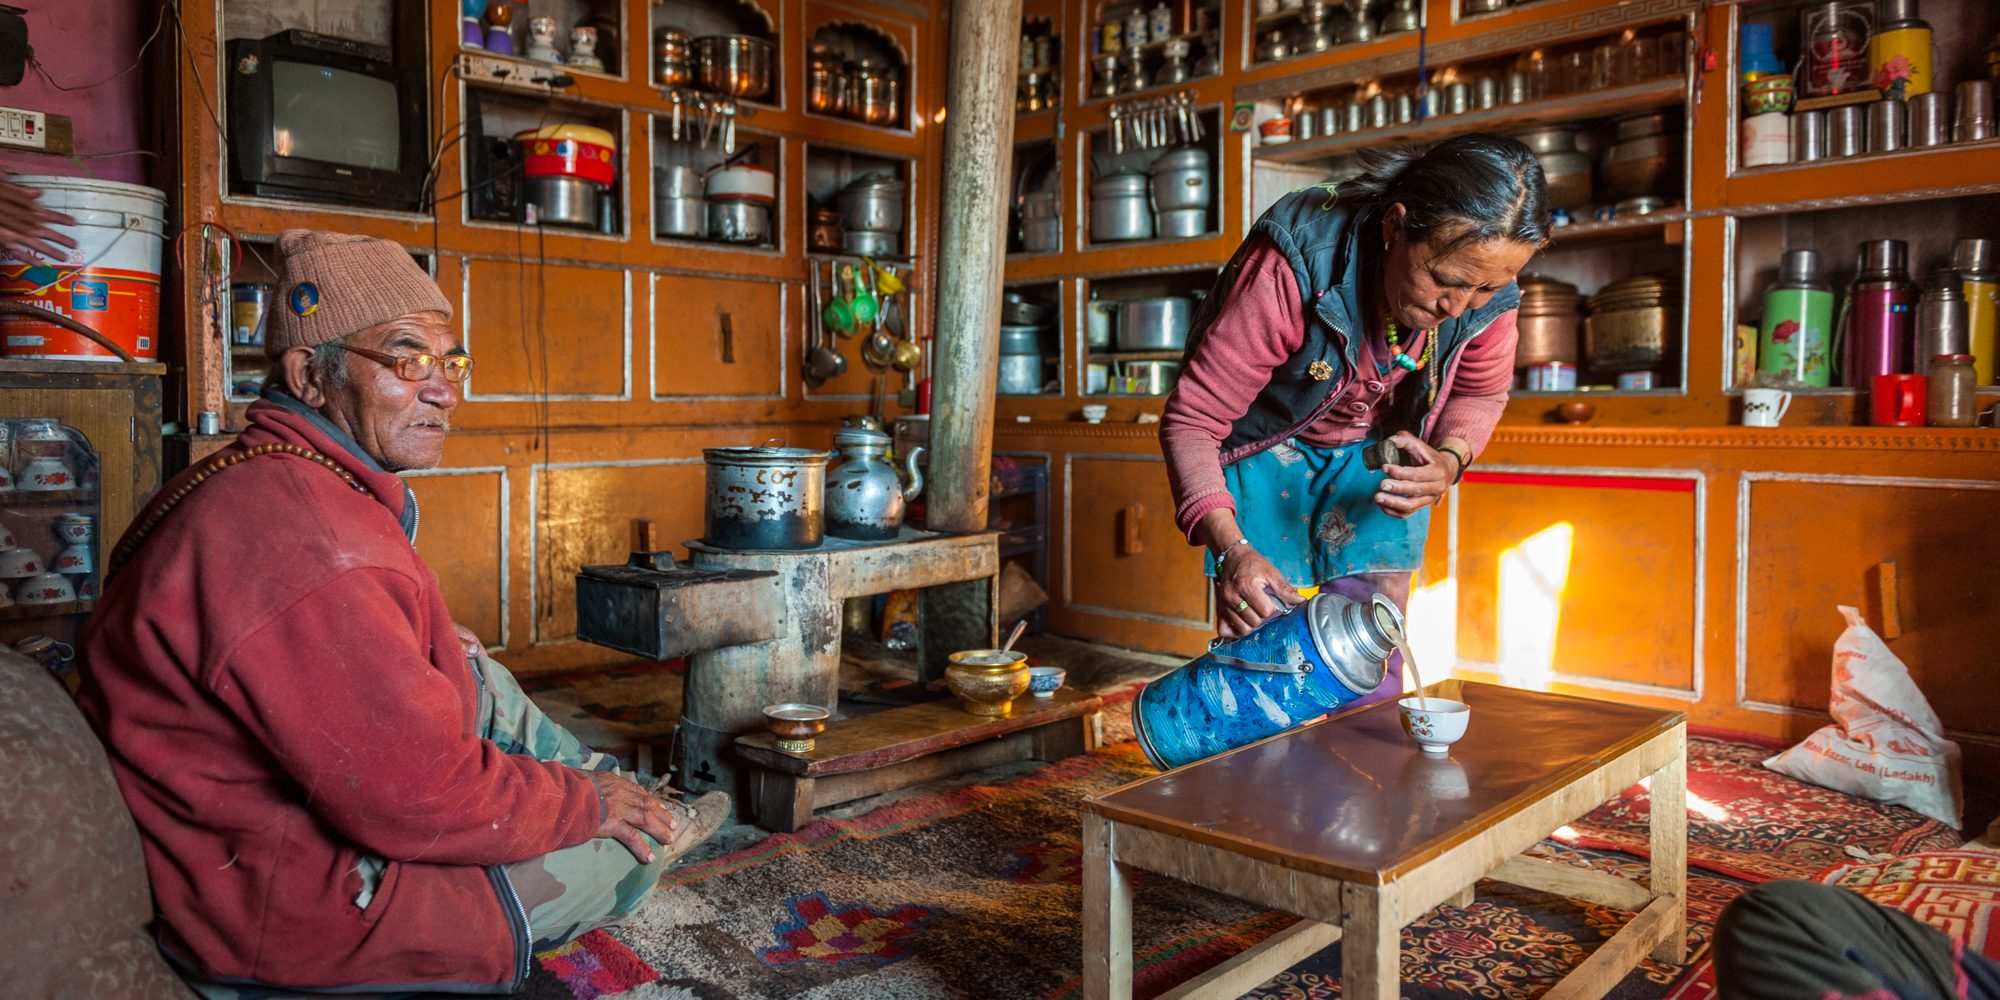 The cold winter will be forgotten with the warm Ladakhi hospitality.